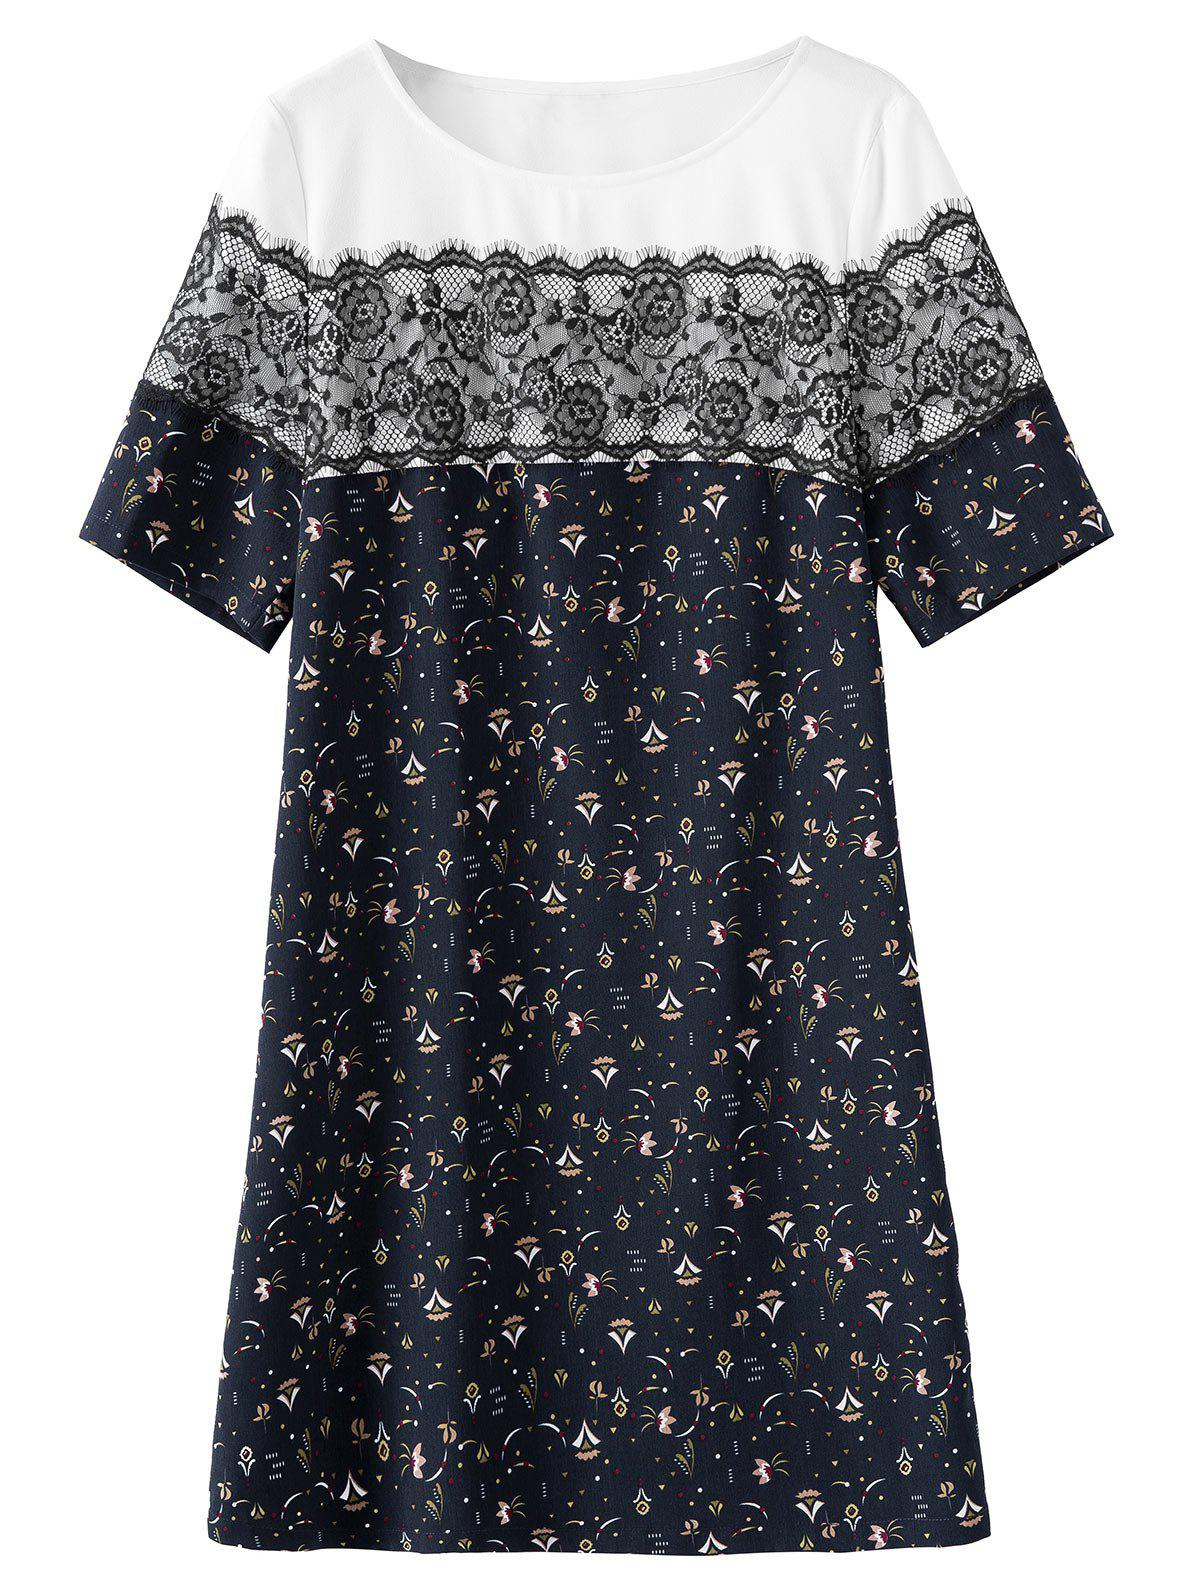 Lace Trim Plus Size Print Dress - PURPLISH BLUE 3XL